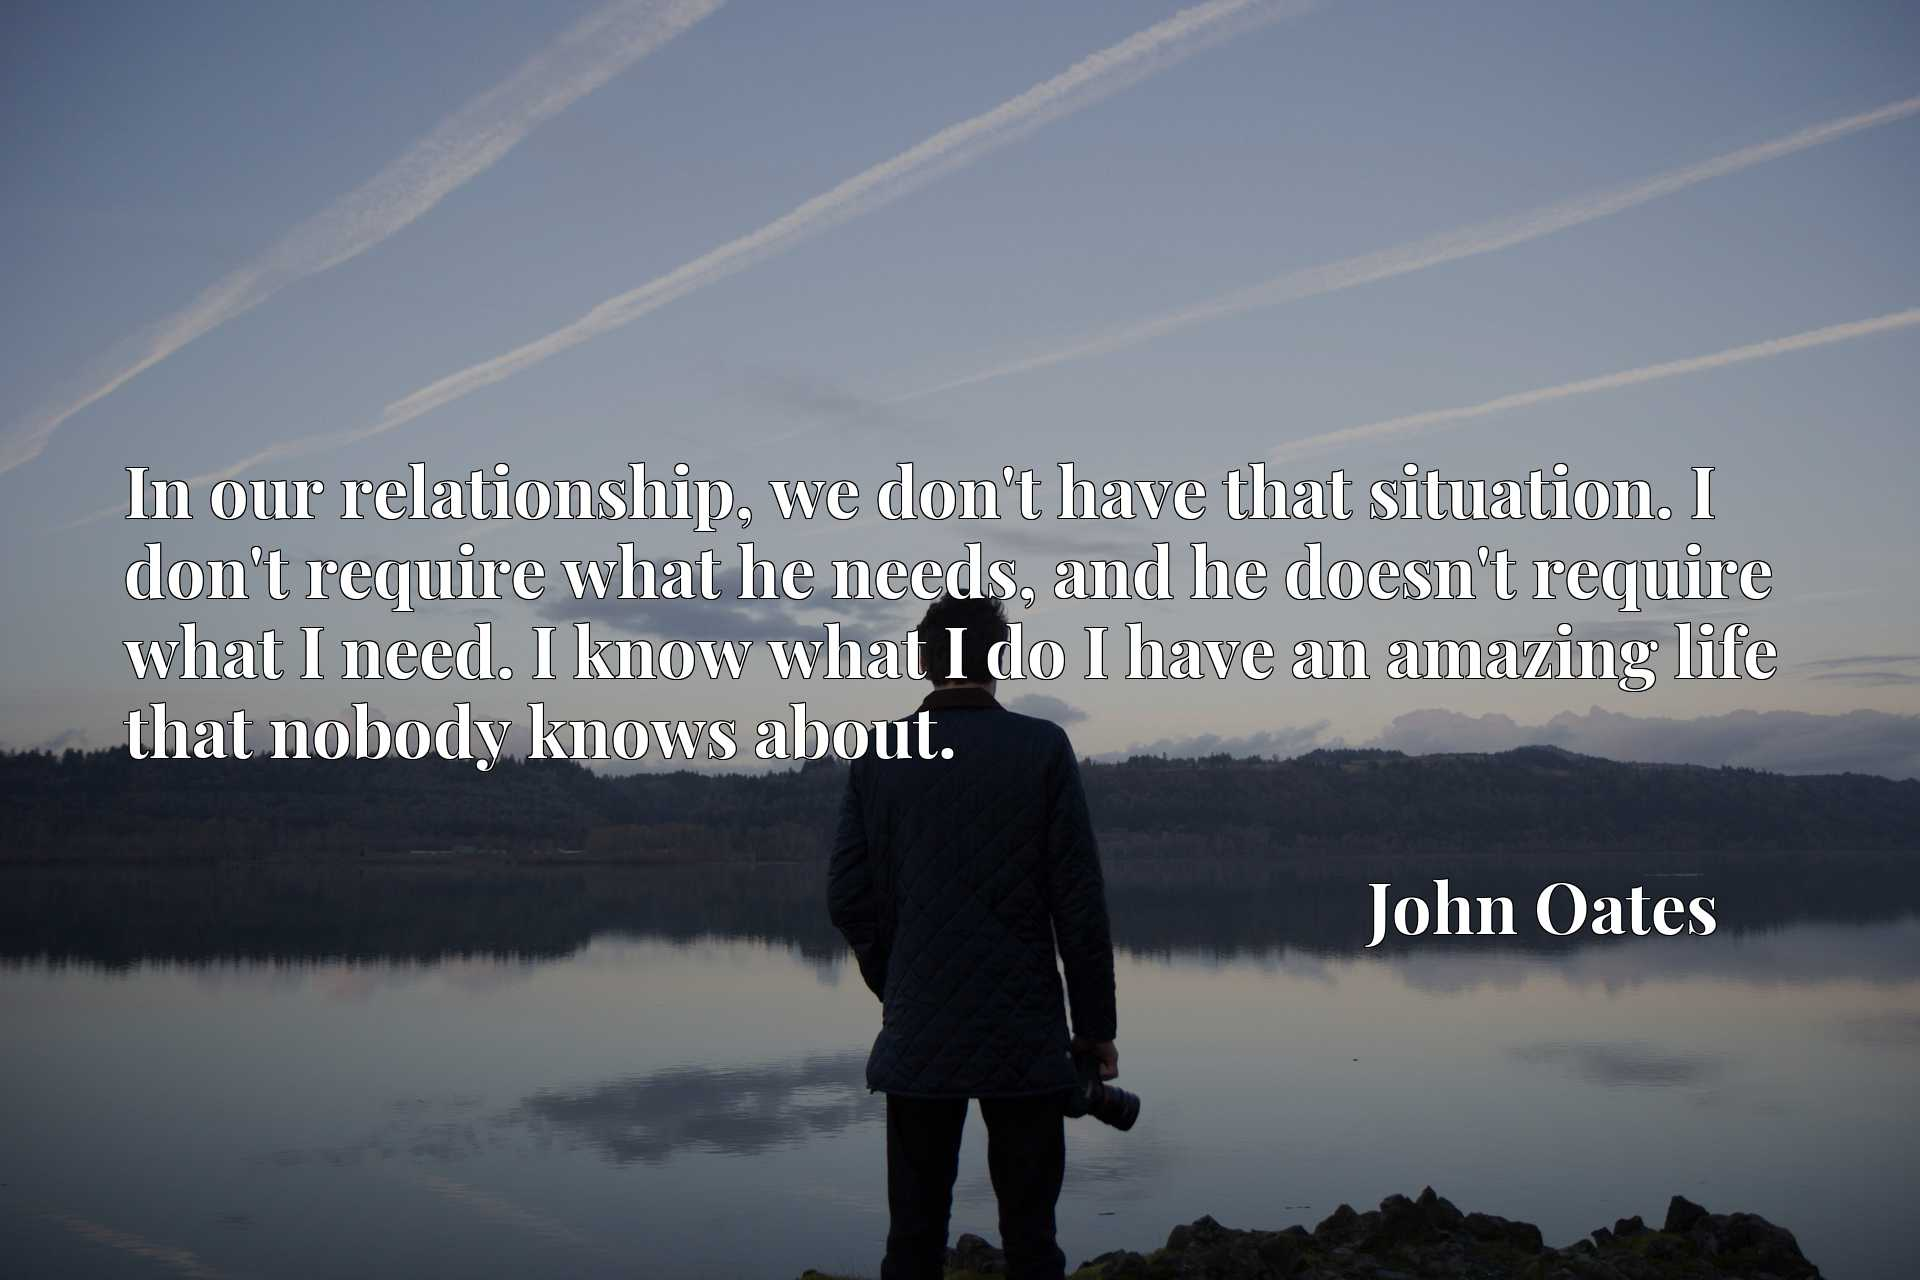 In our relationship, we don't have that situation. I don't require what he needs, and he doesn't require what I need. I know what I do I have an amazing life that nobody knows about.